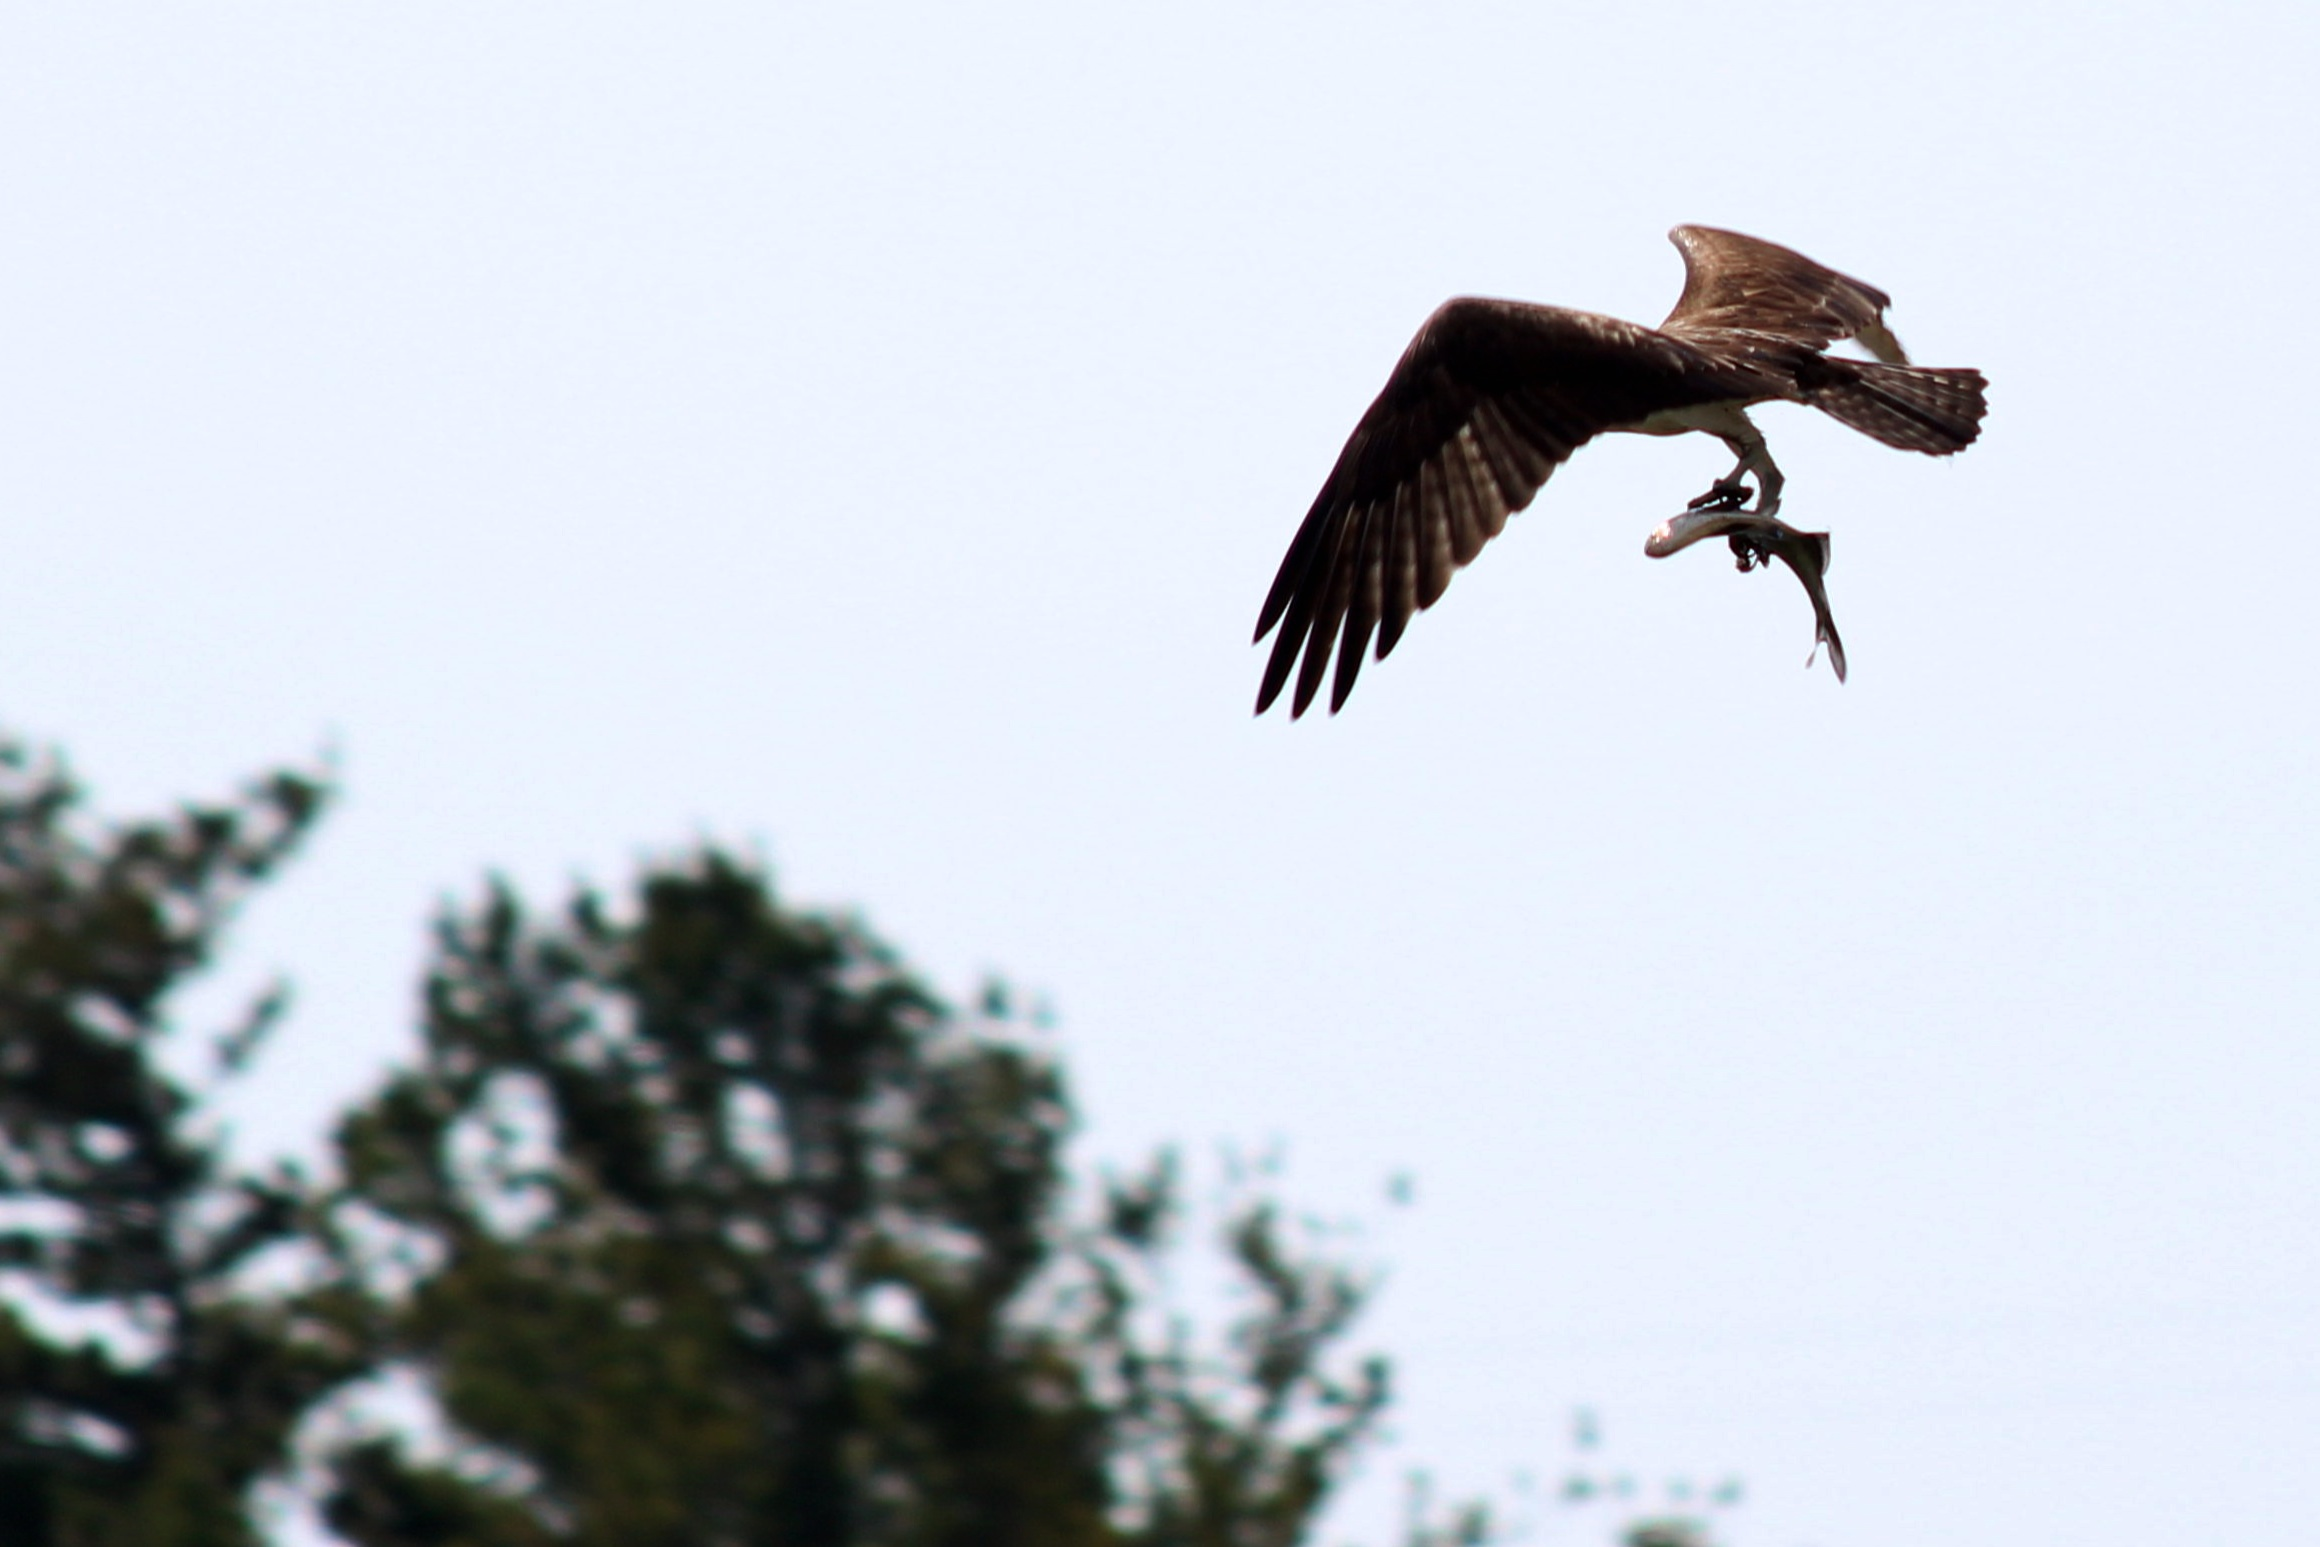 Birds of prey are here to stay. An osprey helps balance the ecosystem, taking a fish from a little pond created by the last  heavy rain near the horse stables close to DZero. Photo: Jesus Orduna, Rice University